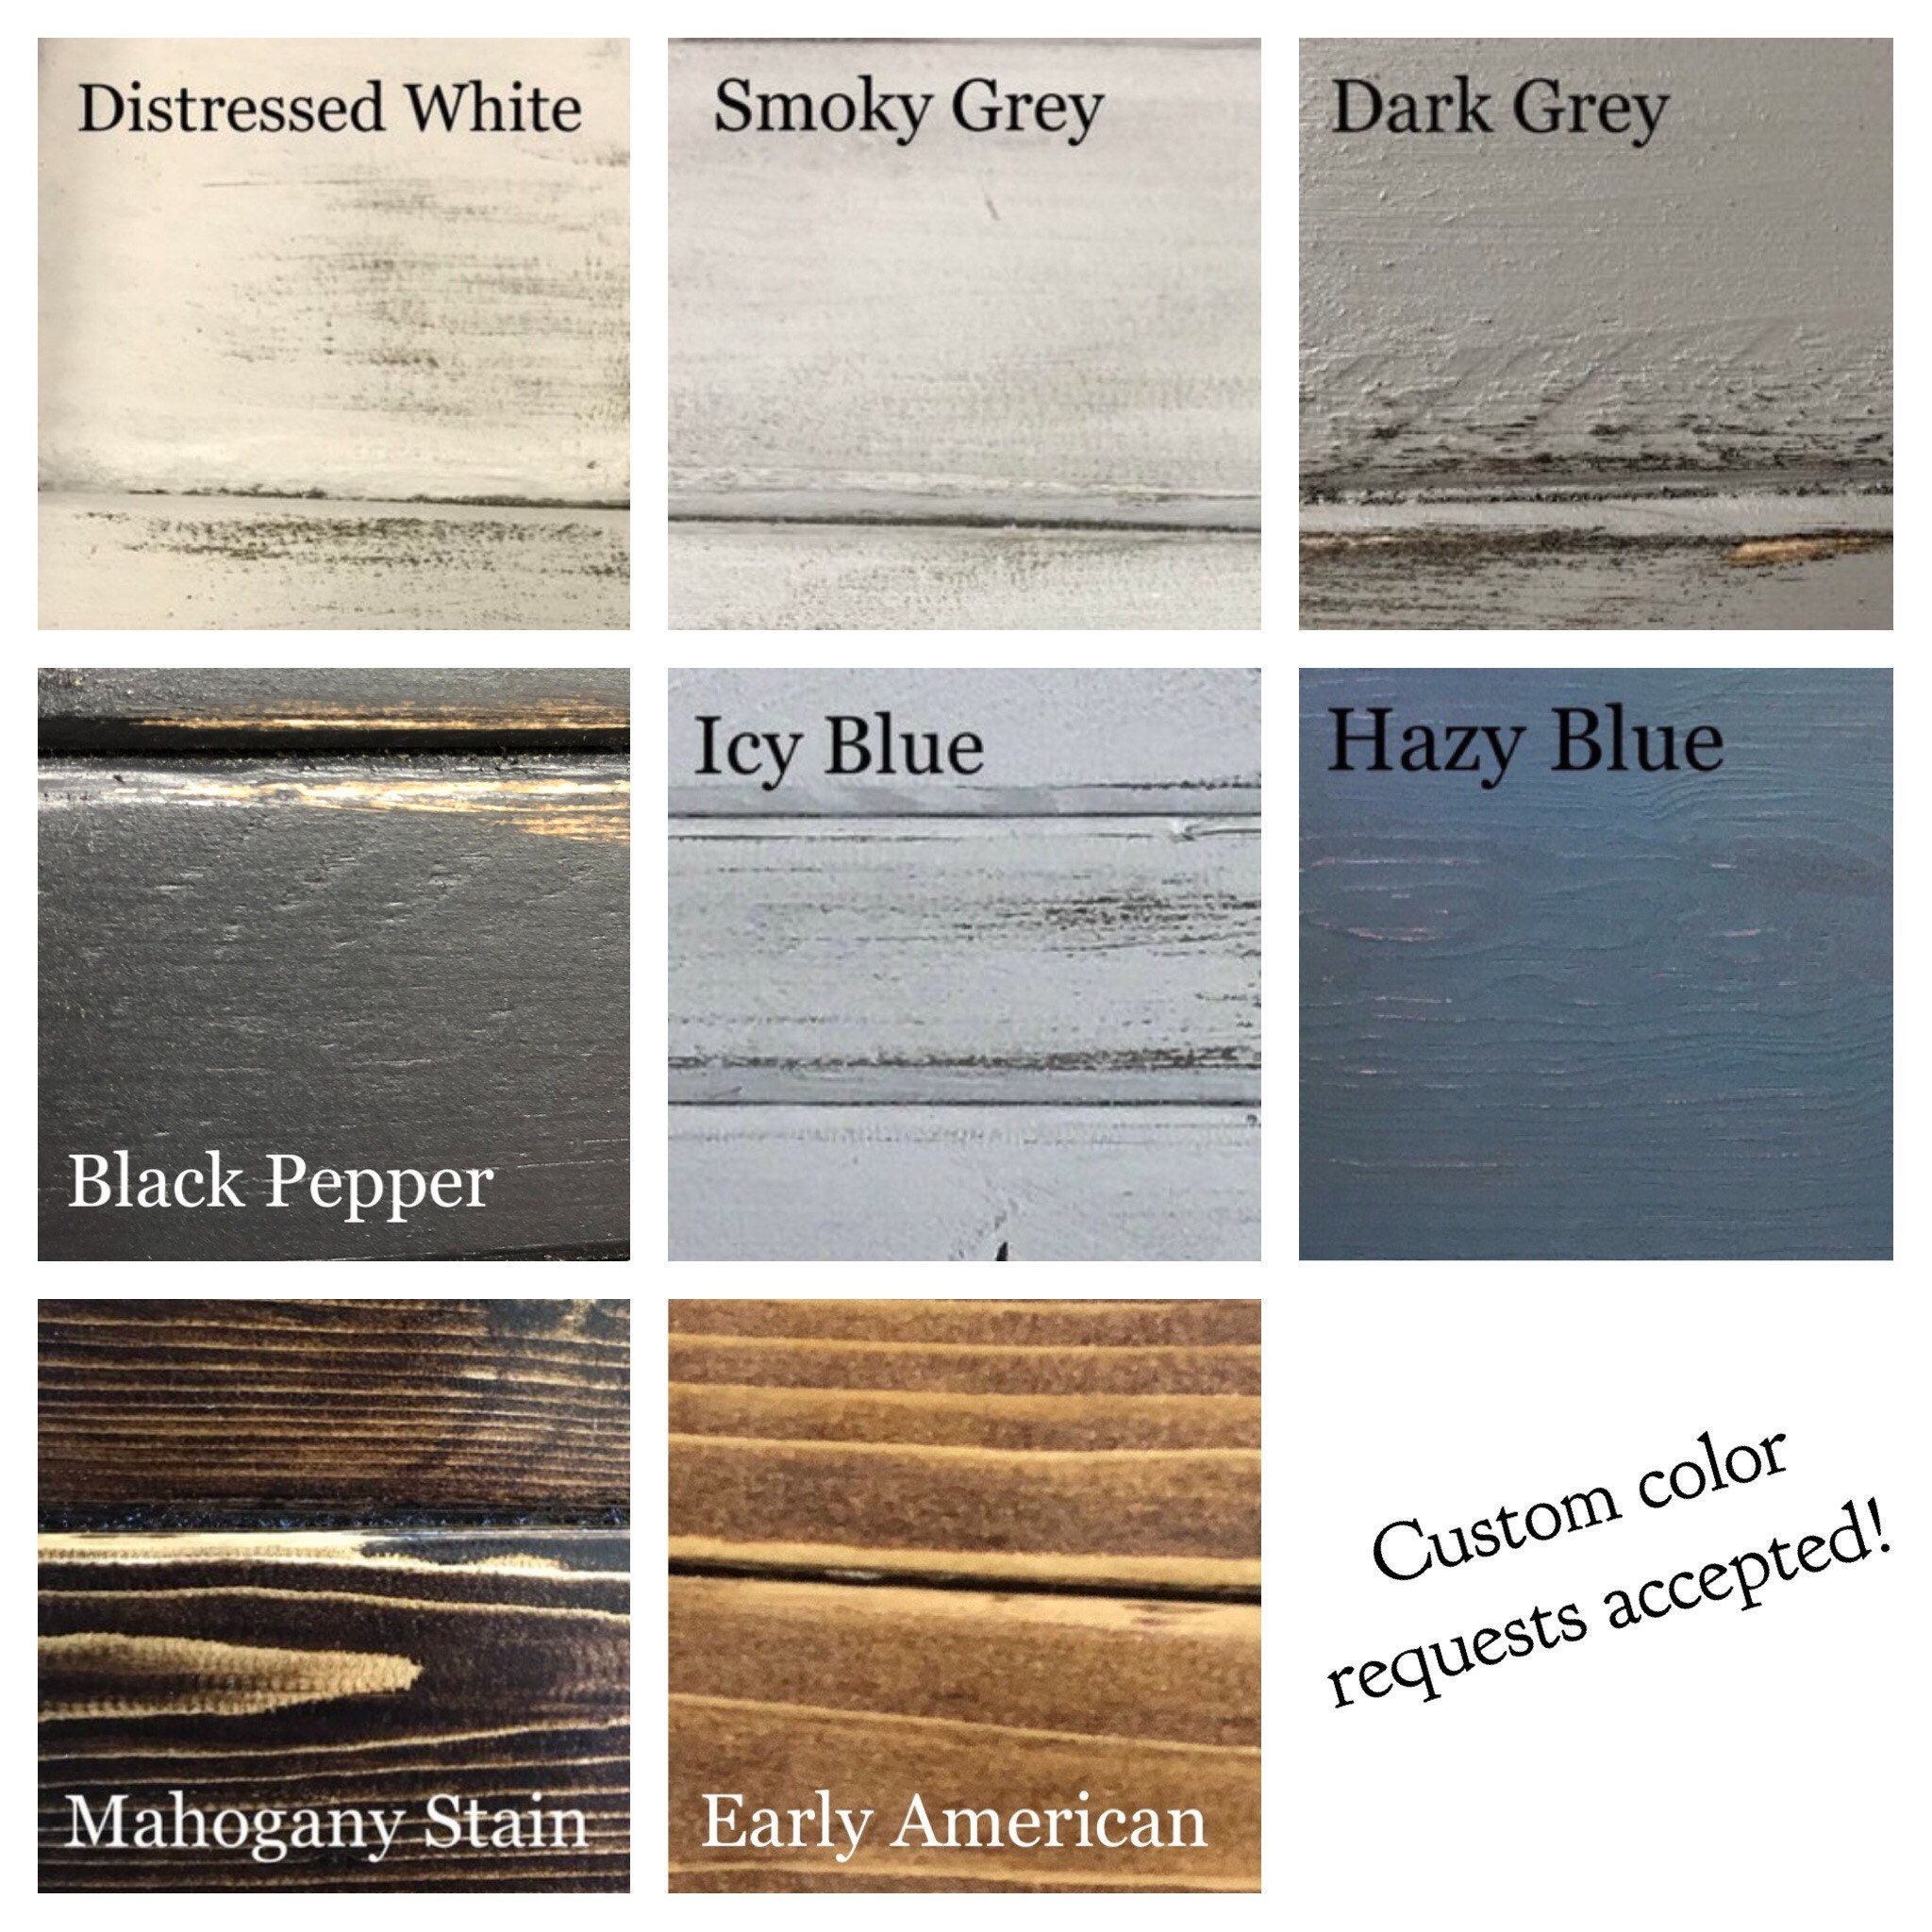 Harmony Boards color options, distressed white, smoky grey, dark grey, black pepper, icy blue, hazy blue, mahogany stain, early american and custom color requests accepted